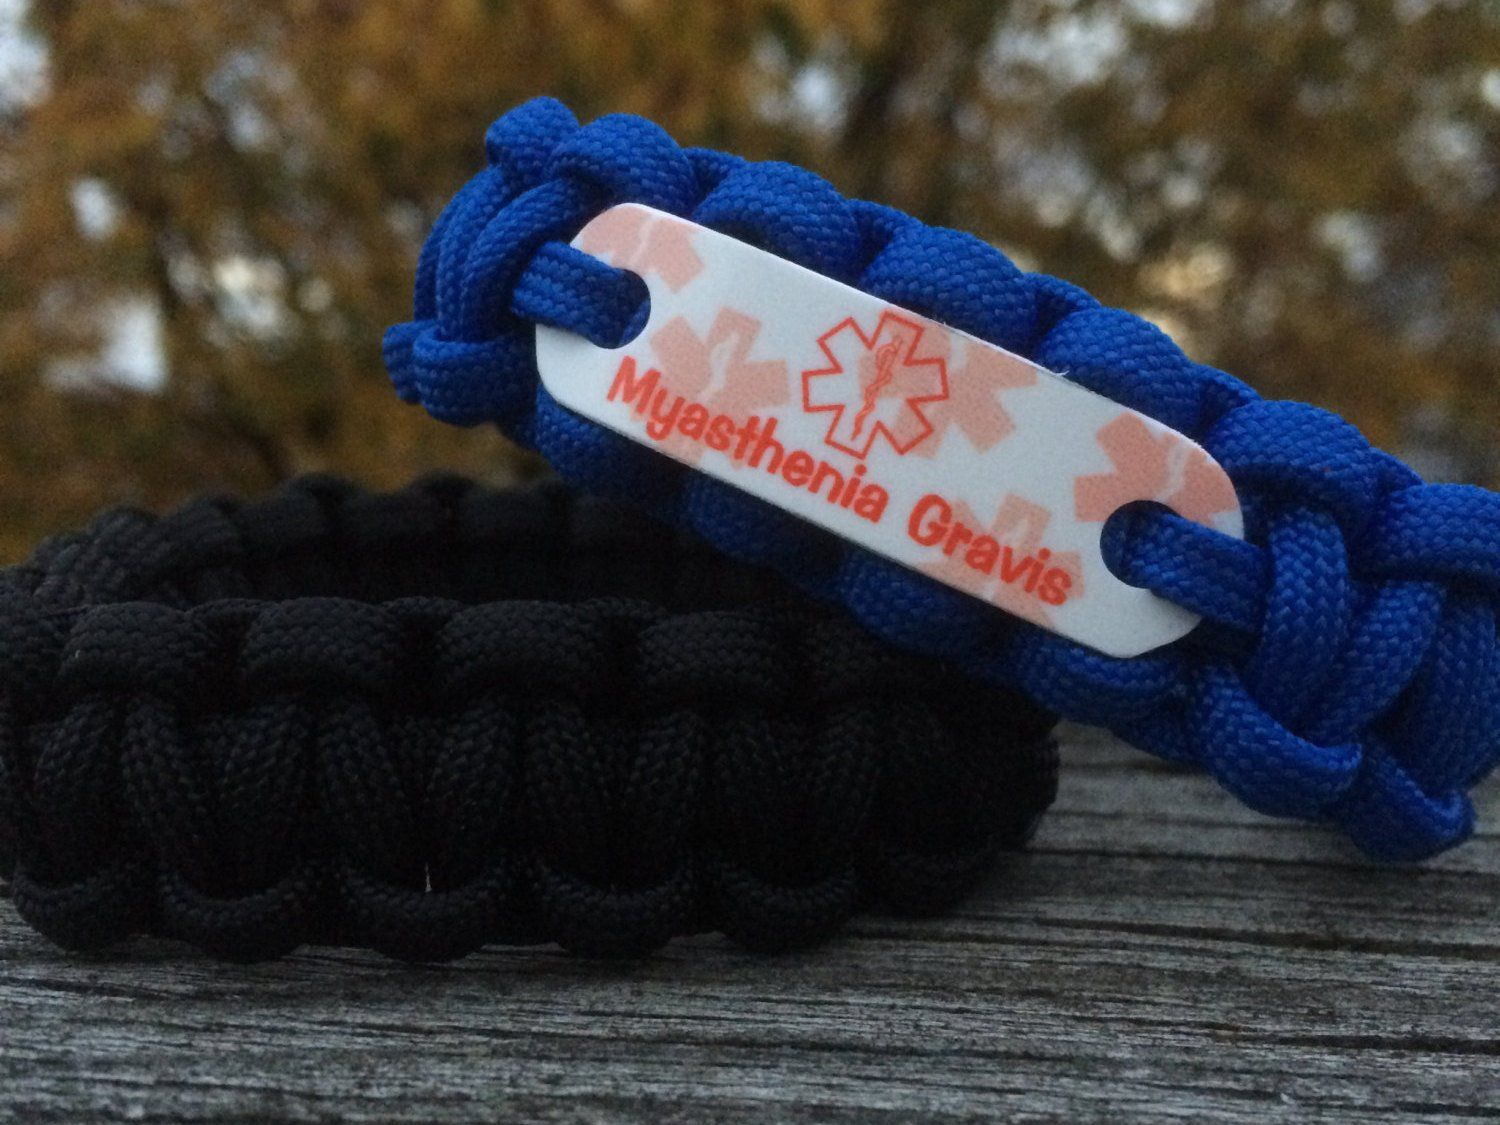 by raise all show bracelet teal uterine fordscordandsupplies paracord ovarian and support awareness for myasthenia cervical gravis pin